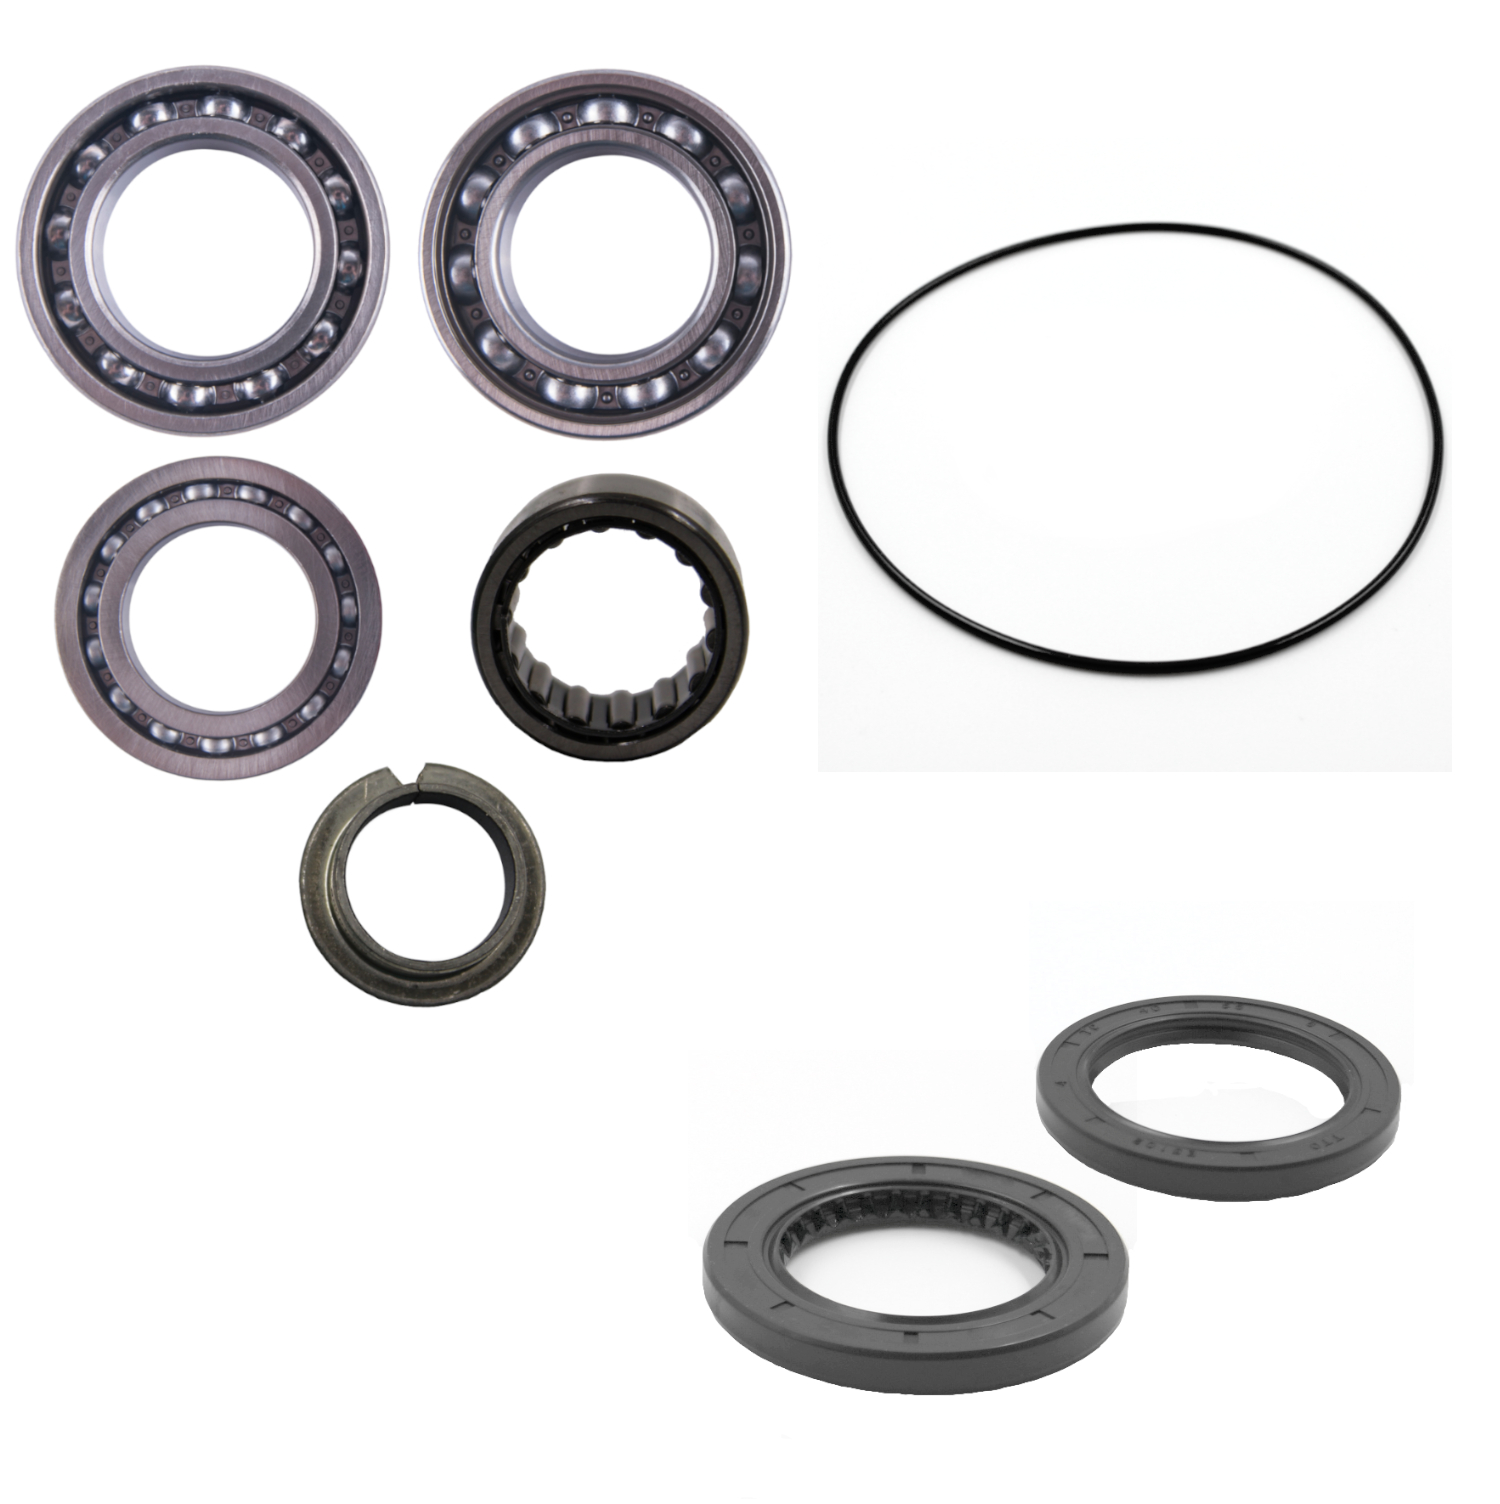 2016 Arctic Cat 1000 Wildcat Rear Differential Bearing and